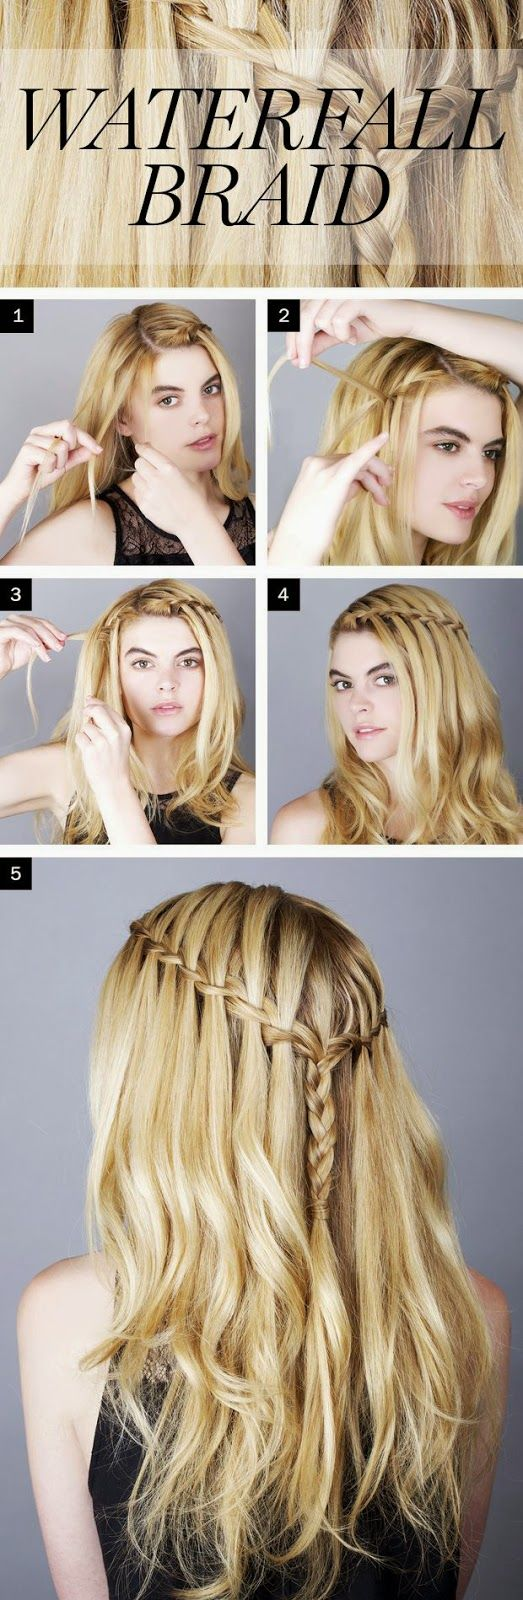 How To Waterfall Braid Your Own Hair?  Must Check! ~ Entertainment News,